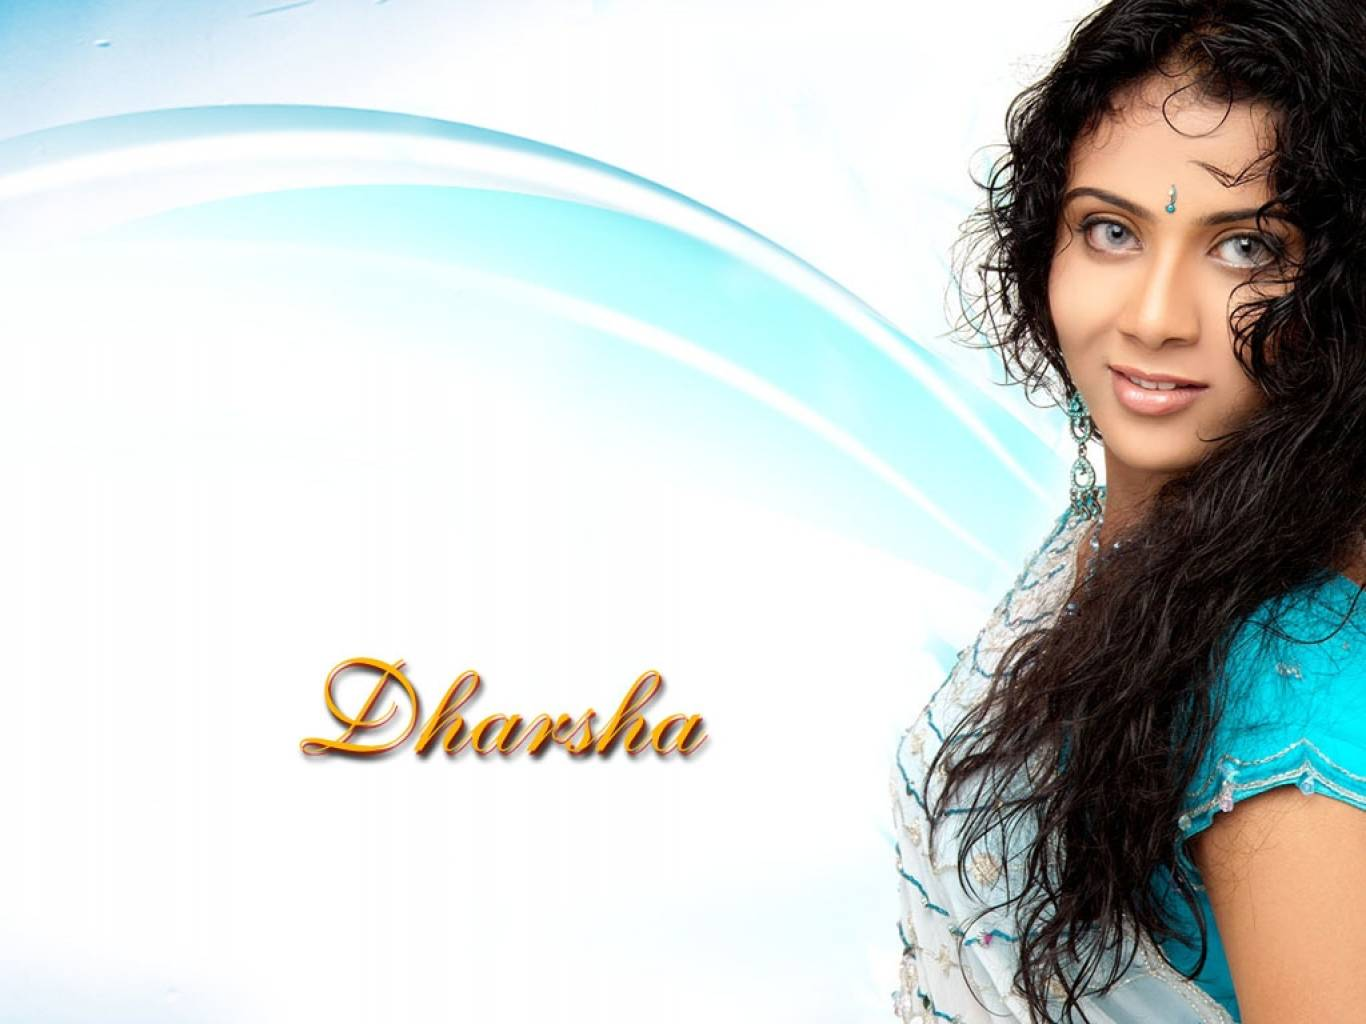 Dharsha Wallpapers